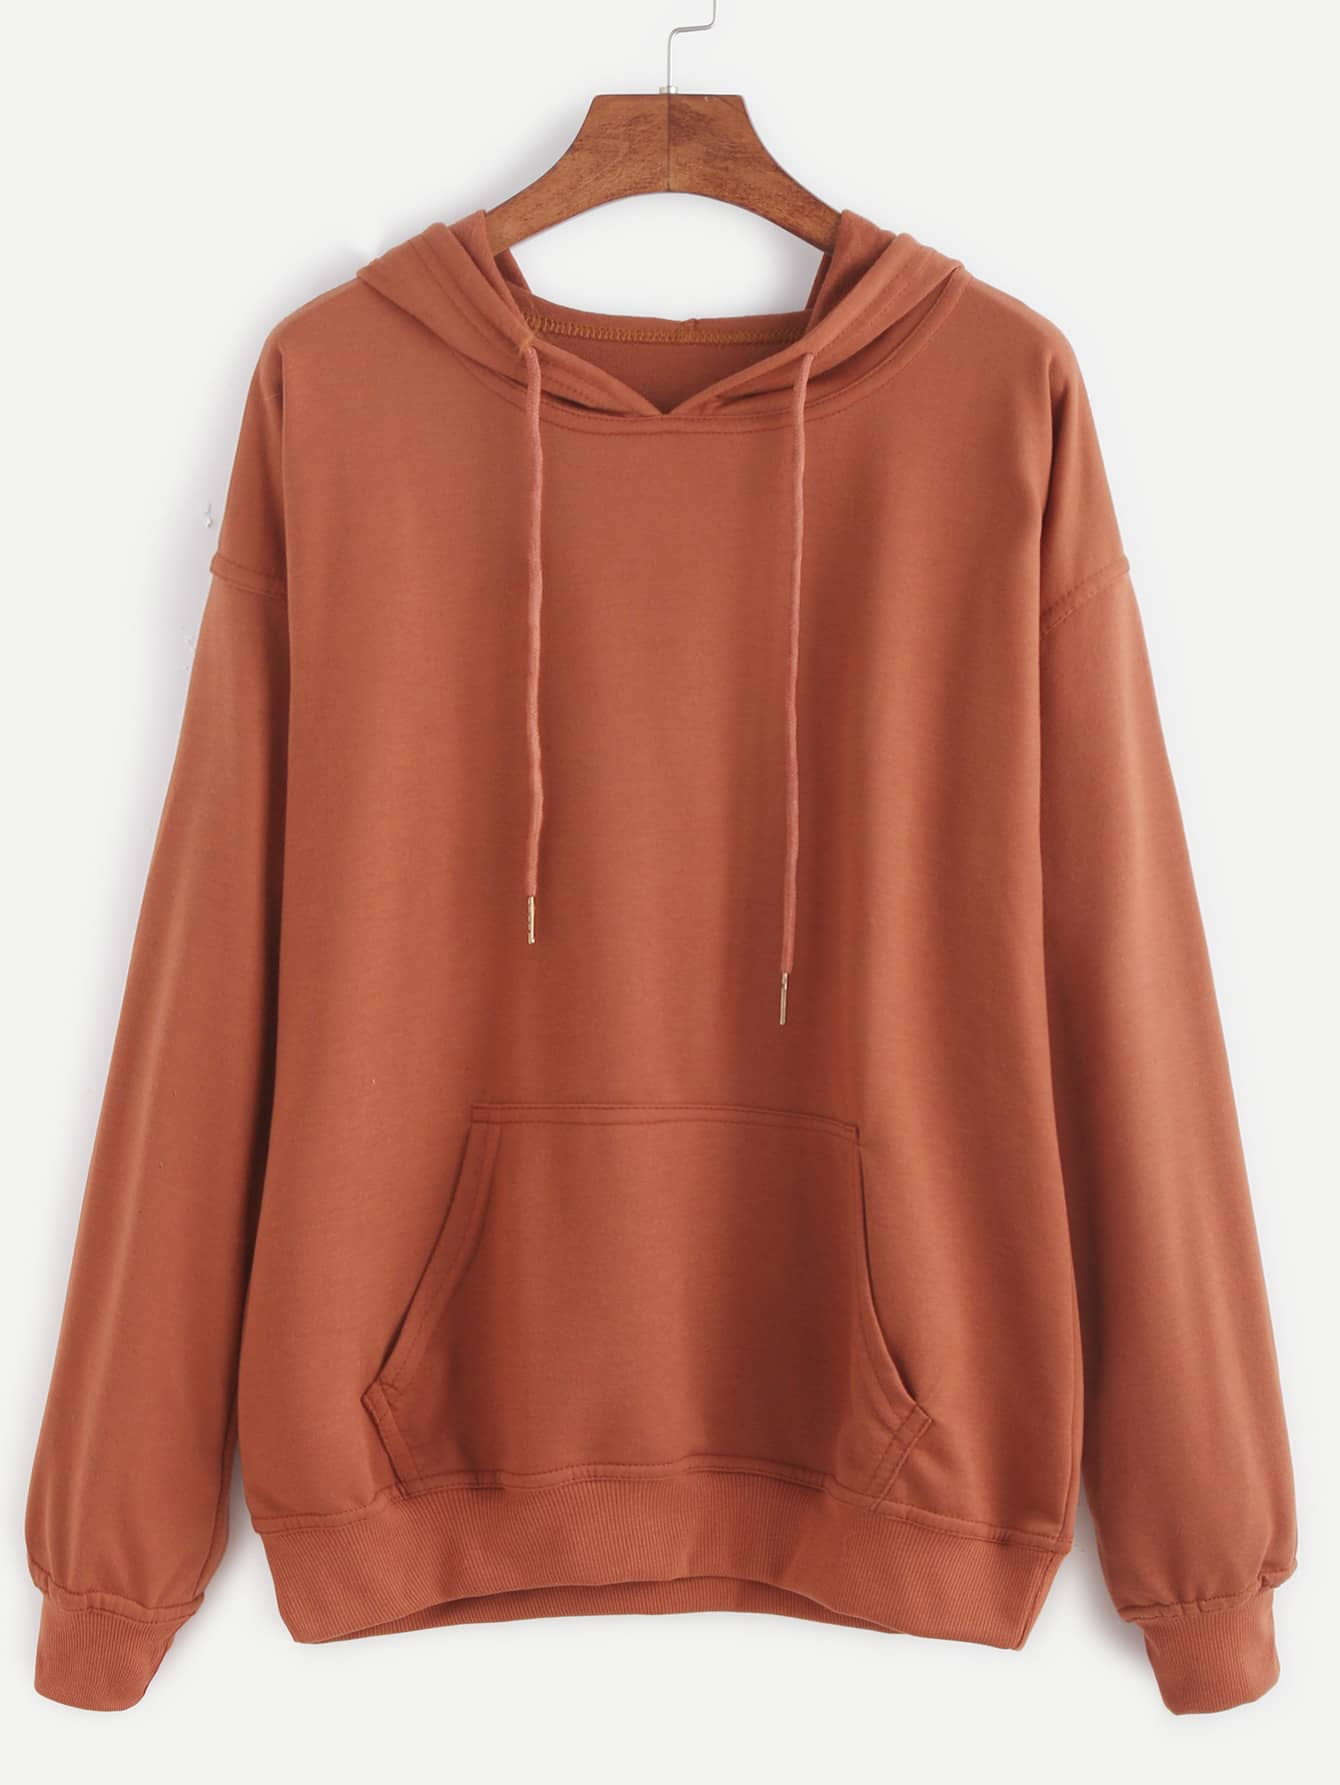 Drop Shoulder Hooded Drawstring Sweatshirt -SheIn(Sheinside)